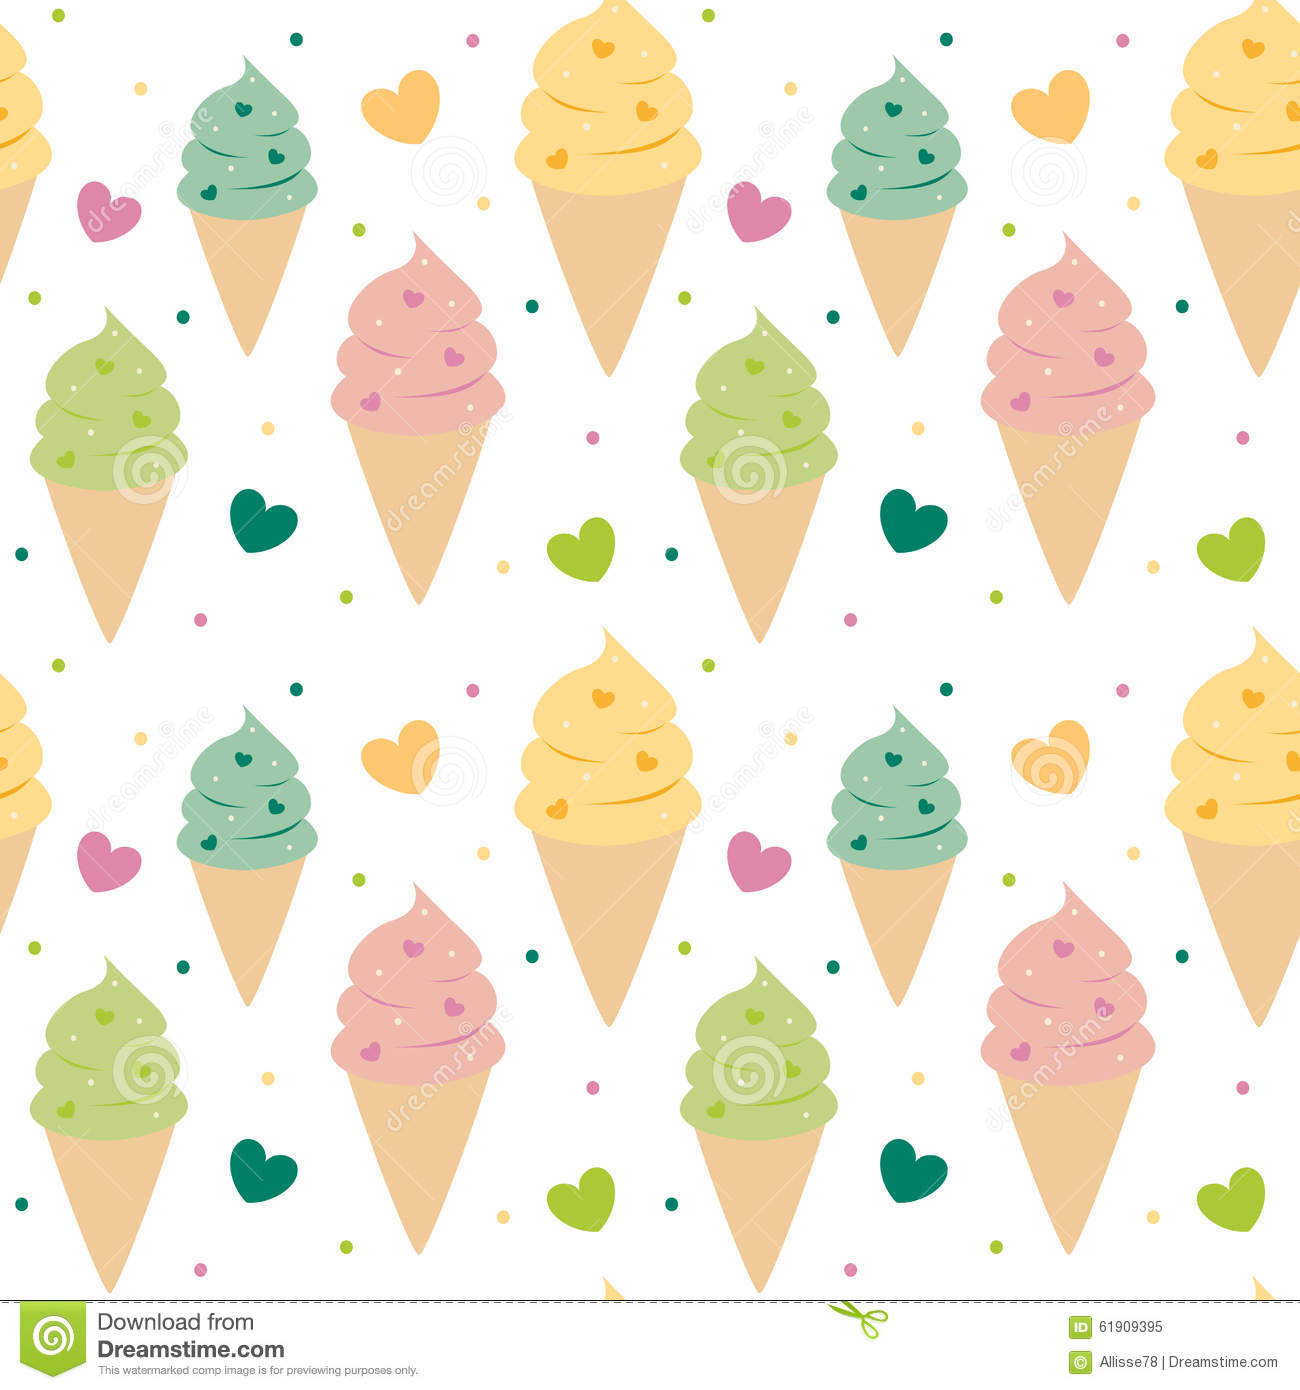 Sweet Ice Cream Flat Colorful Seamless Pattern Vector: Cute Colorful Ice Cream Seamless Pattern Background